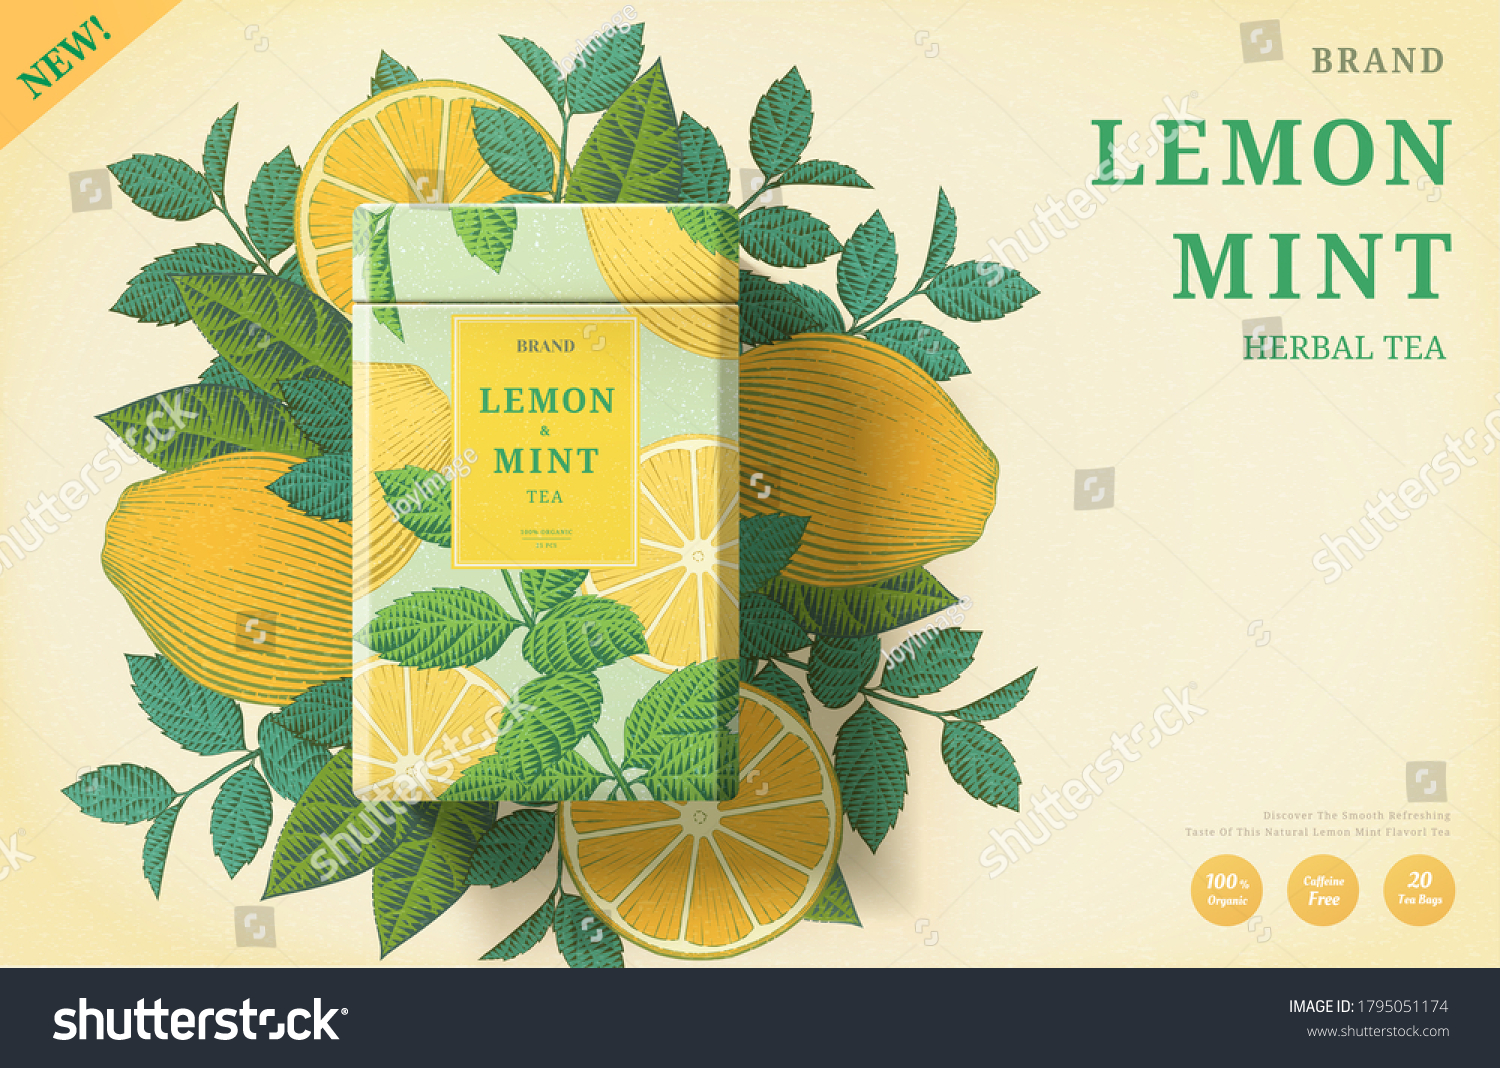 Lemon mint tea ads with engraving ingredients background on beige background, 3d illustration yellow and mint color packaging #1795051174